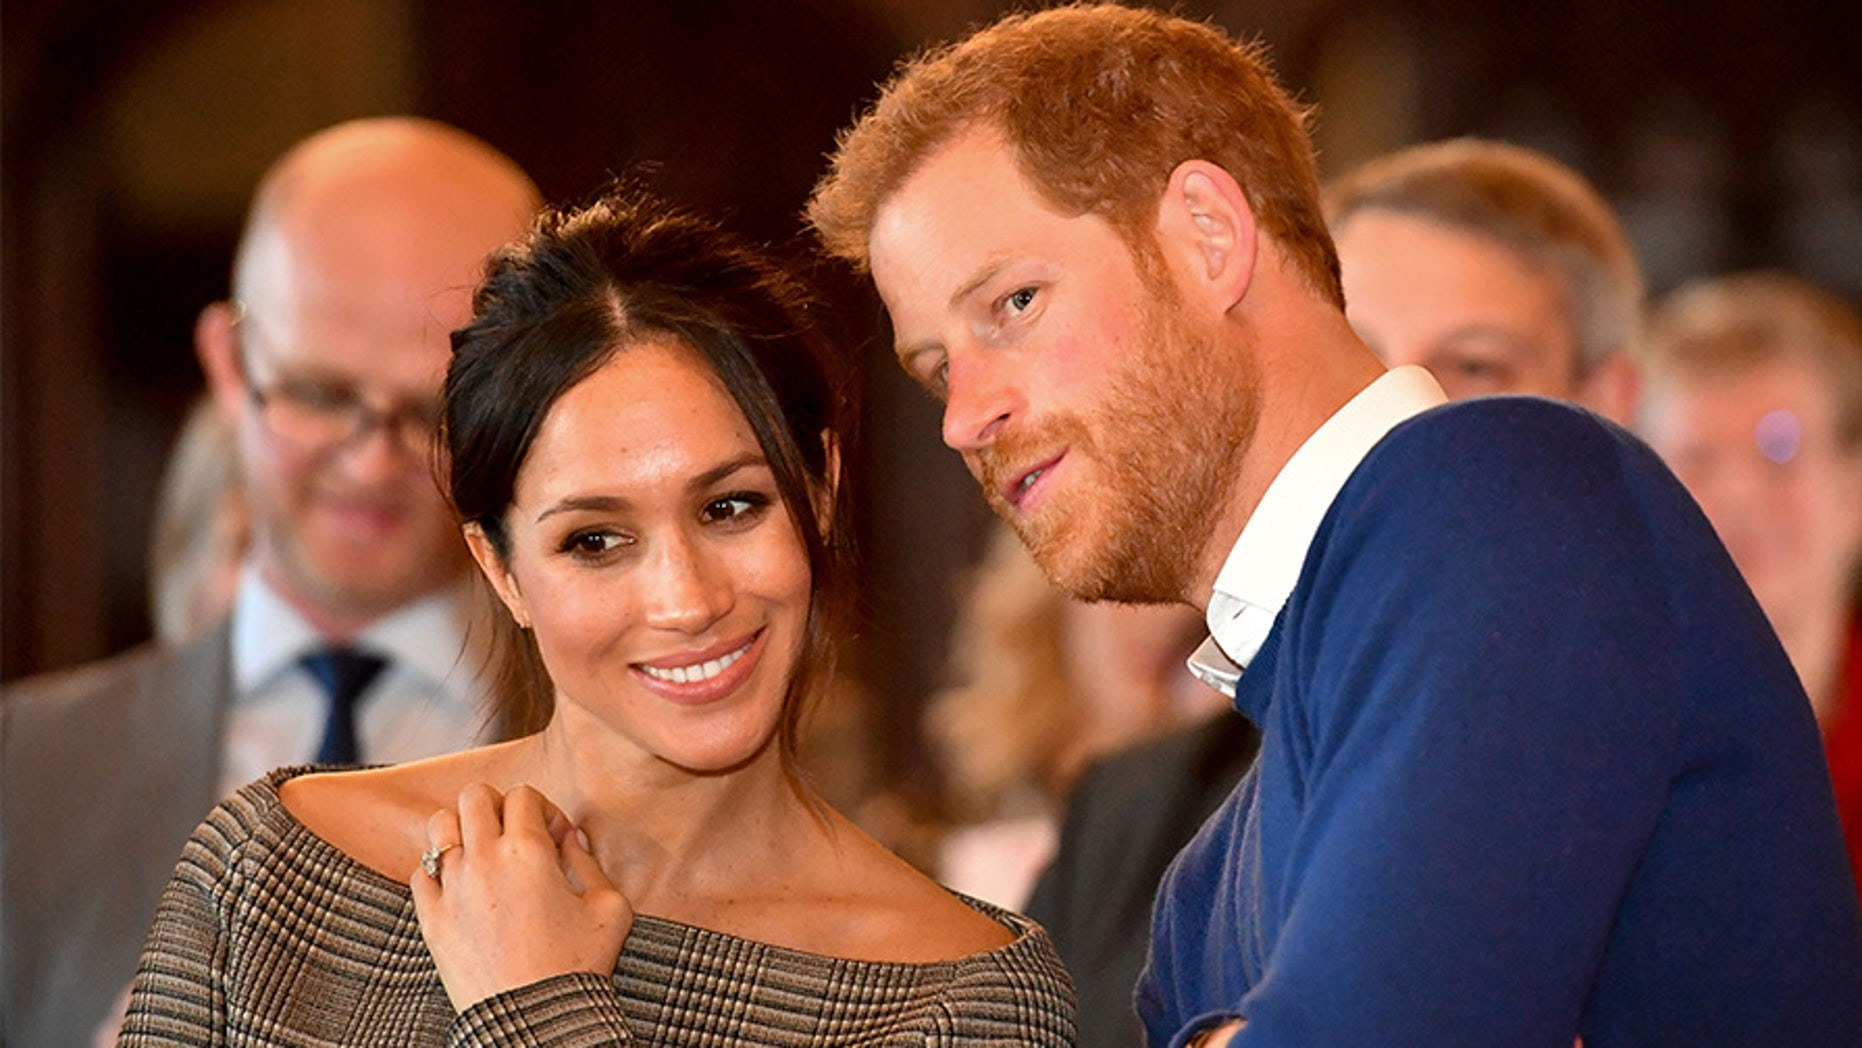 The U.S. wedding dress industry expects Markle's gown — whatever it looks like — to have a near-immediate effect on the styles their customers will be looking for.